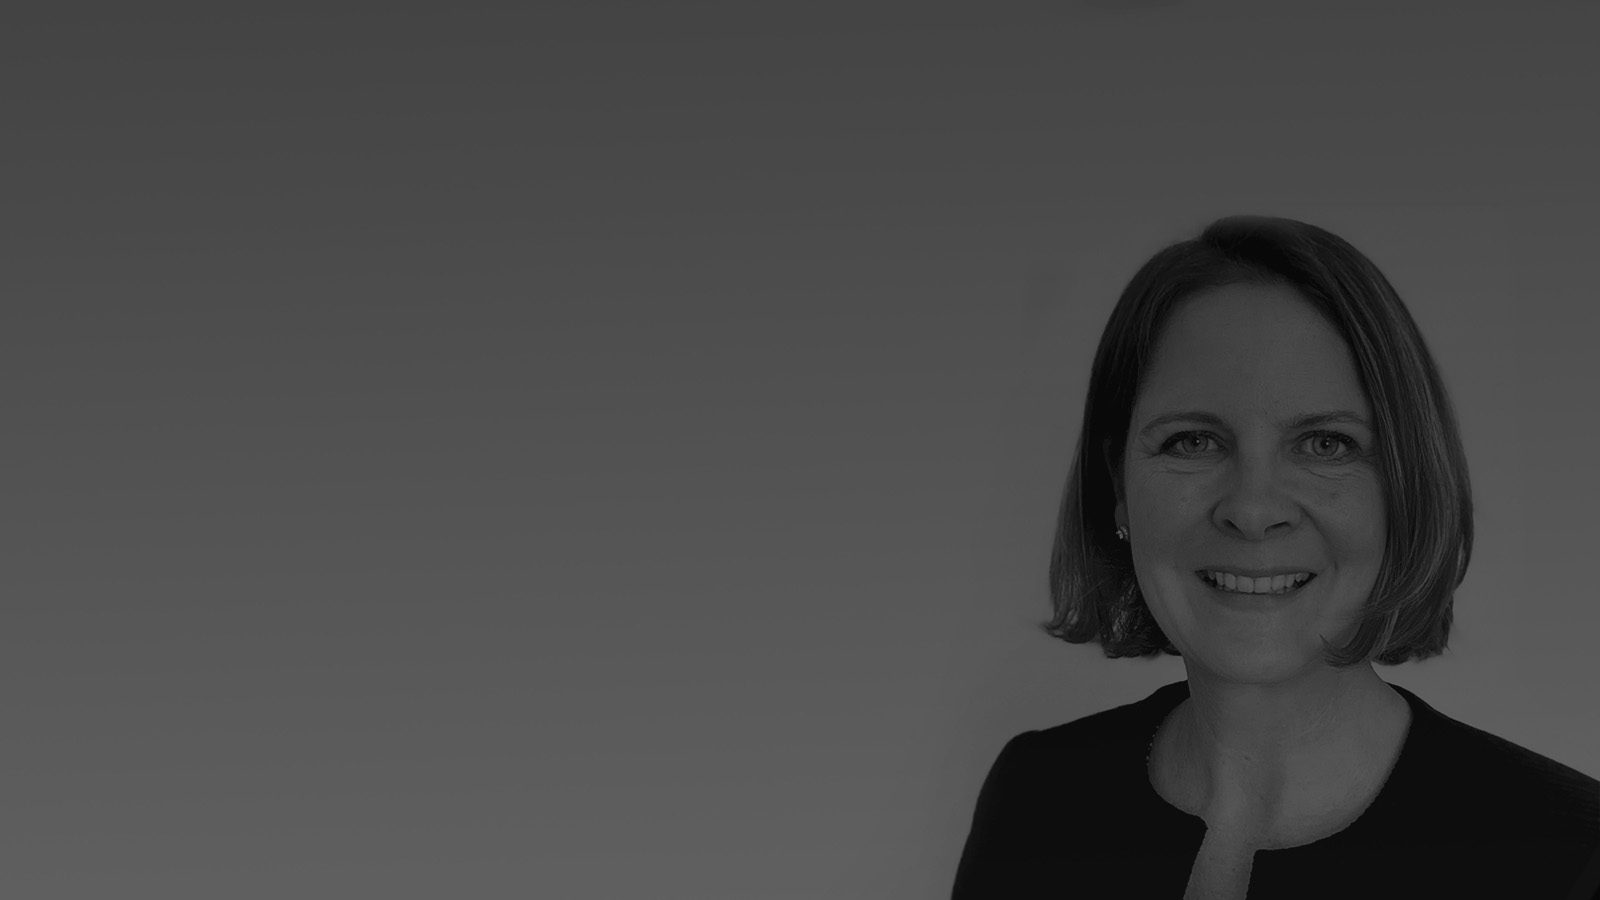 PRESS RELEASE: NICOLA LOMAS JOINS FESTIVE ROAD TO SUPPORT CONSULTANCY GROWTH